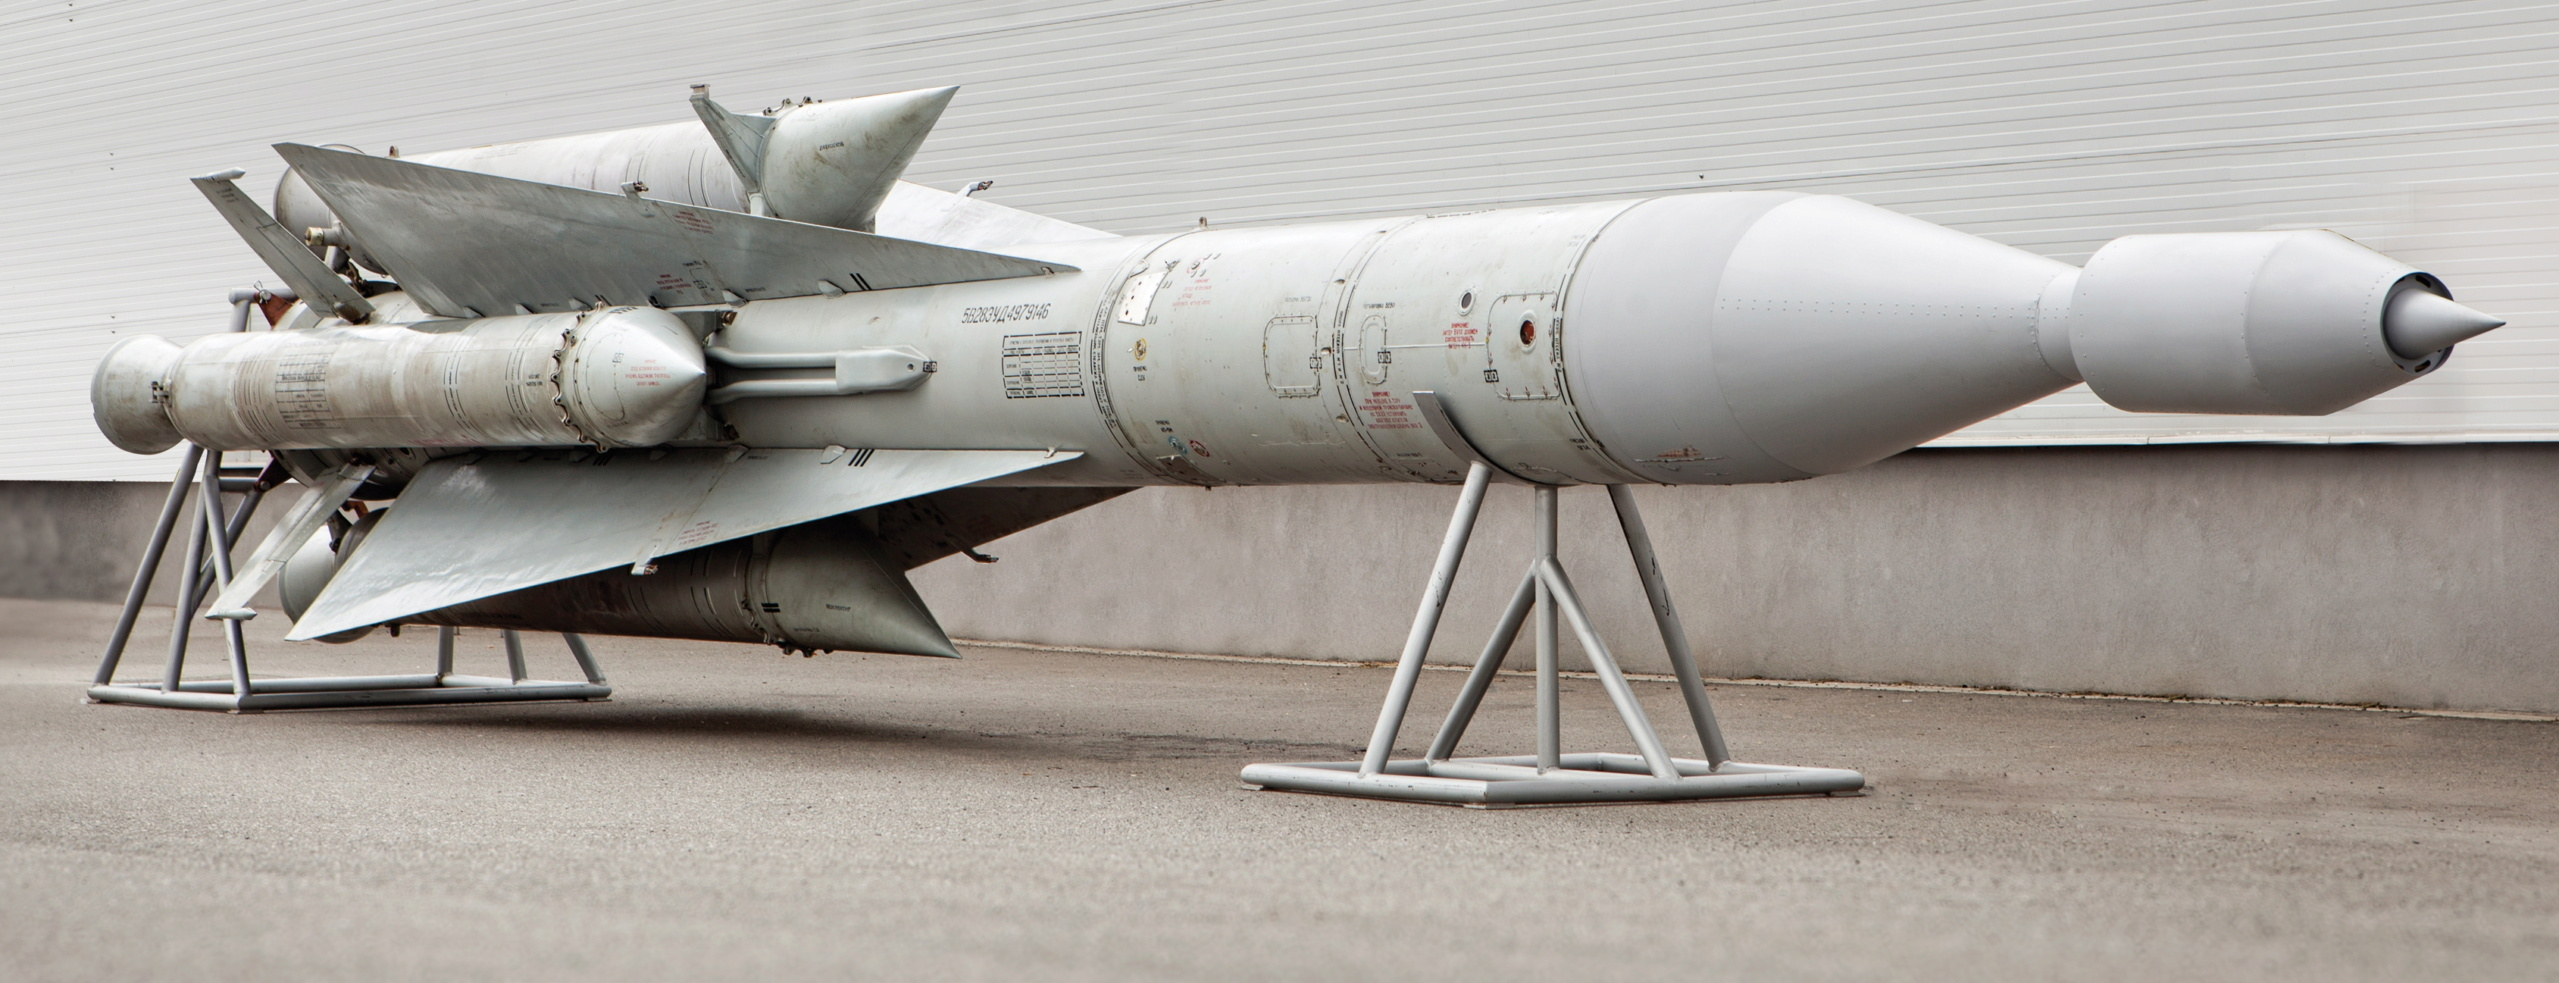 3M22 Zircon Hypersonic Cruise Missile - Page 21 Lf14_r10